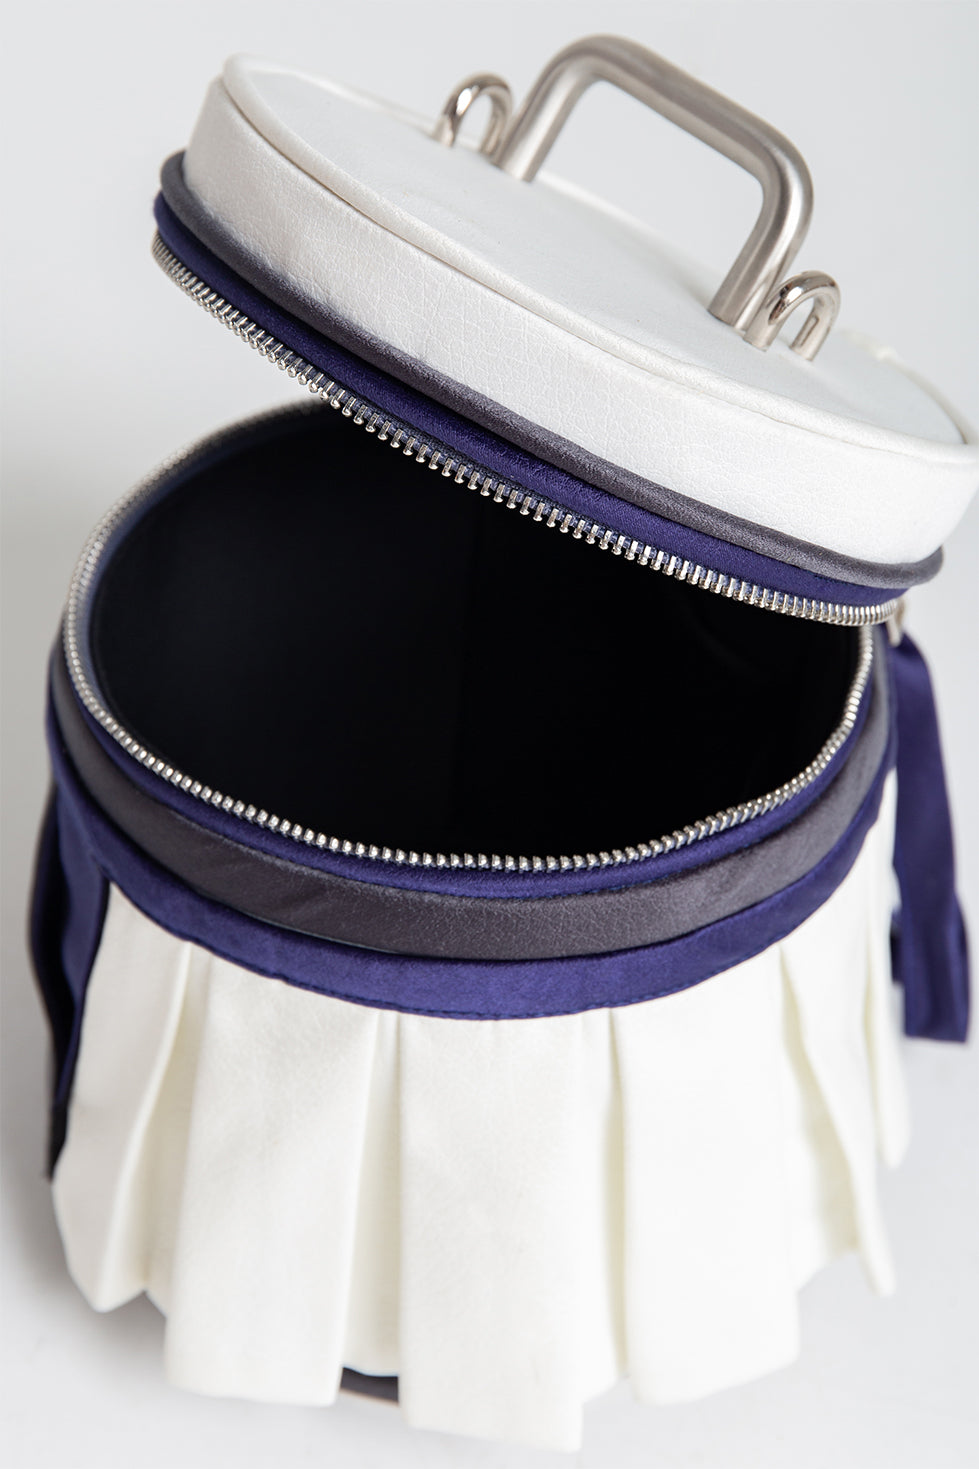 Mini Stool Bucket Bag in White/ Blue